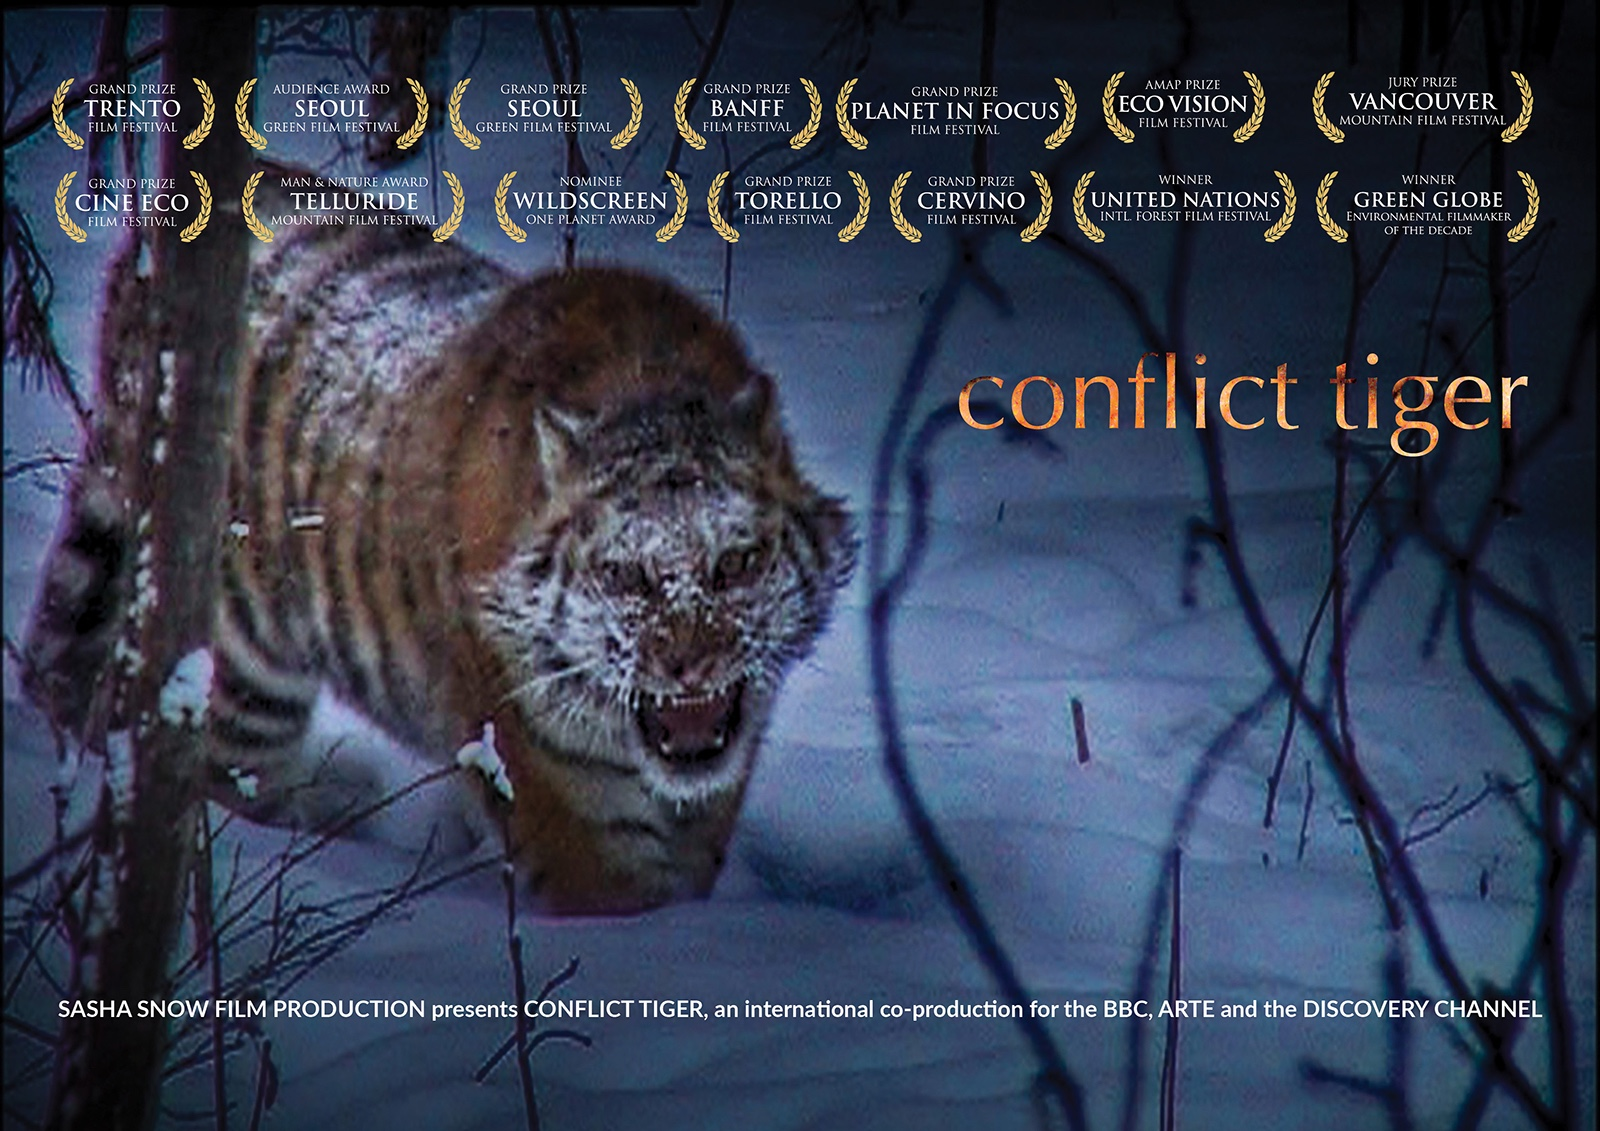 CONFLICT TIGER AWARDS.jpg